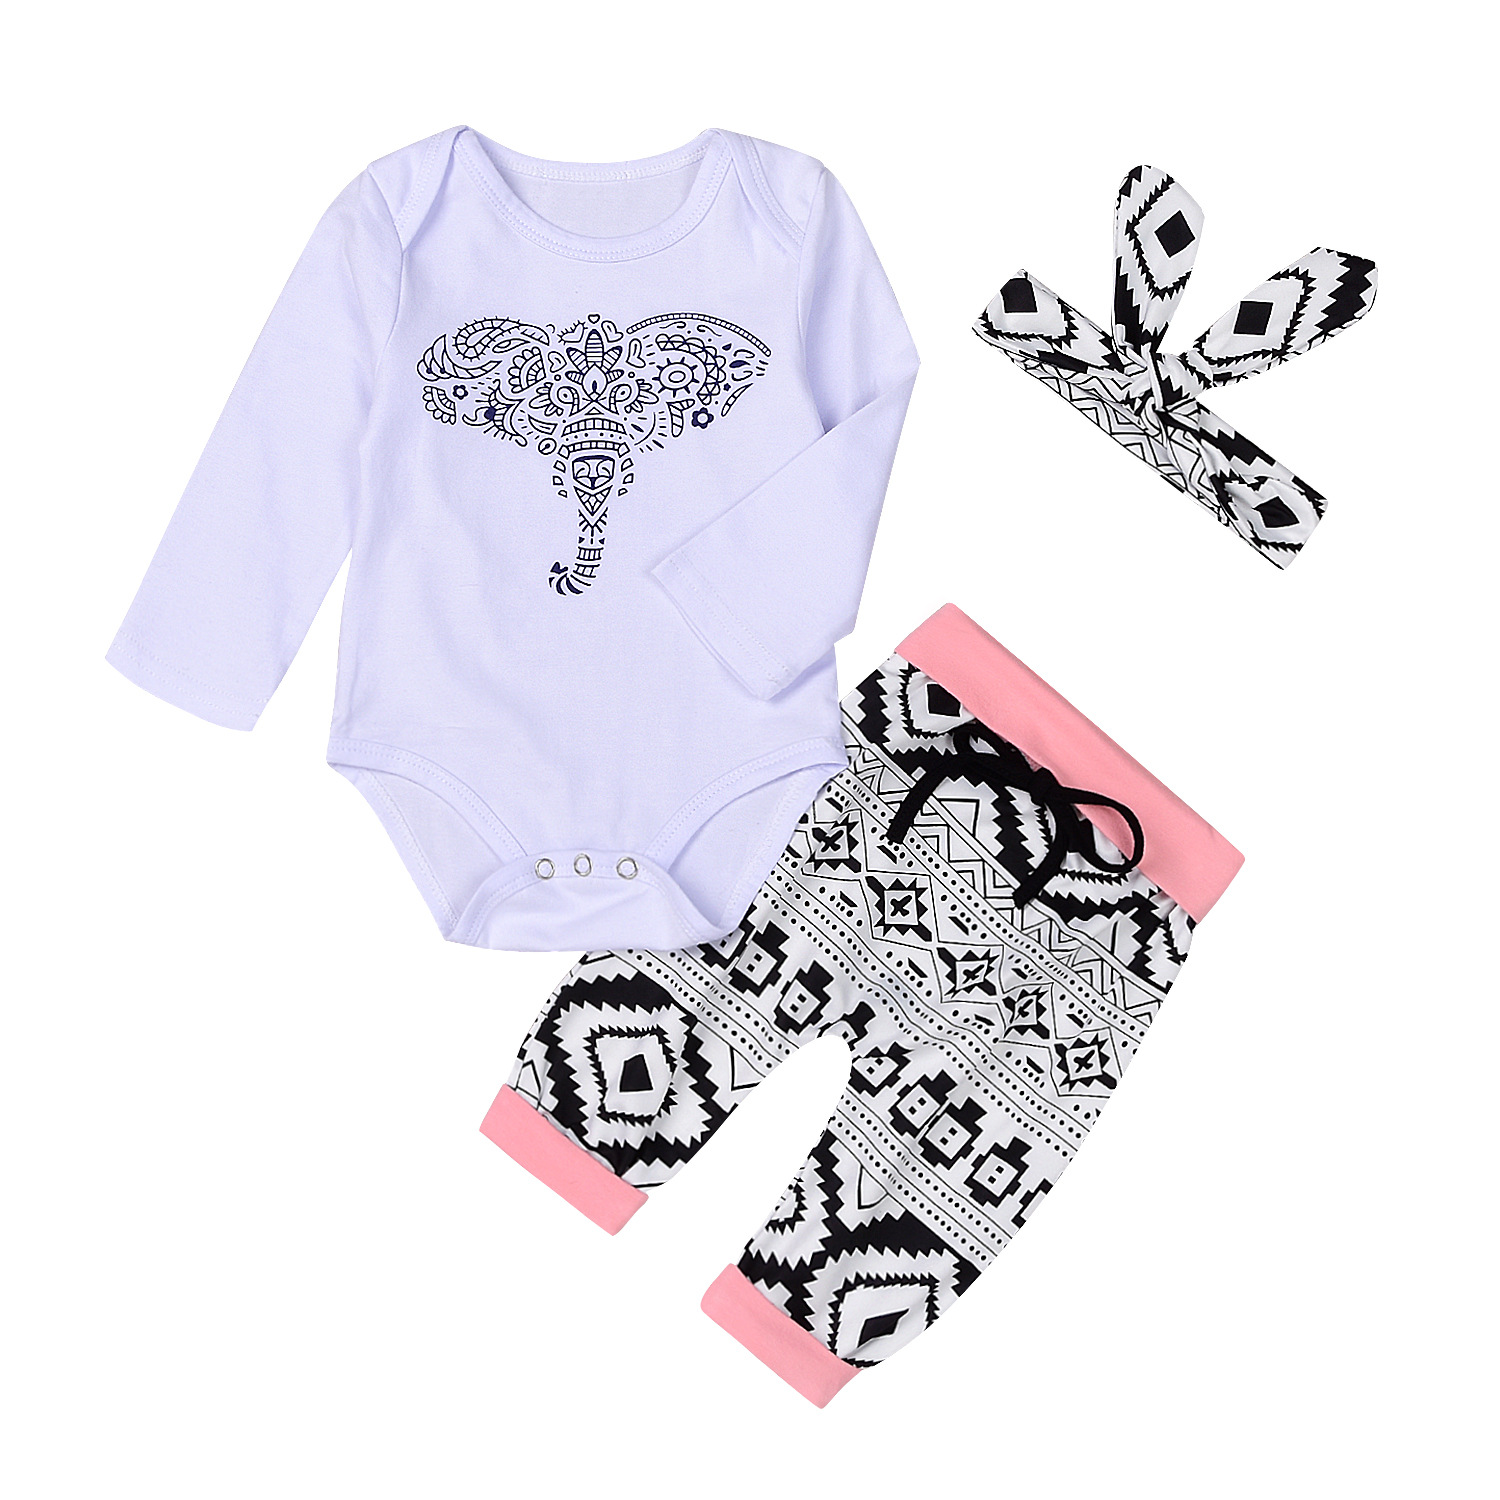 Fashion Baby Girls Clothes White Cotton Baby Romper Pants Set Cartoon Elephant Newborn Outfits European Infant Set